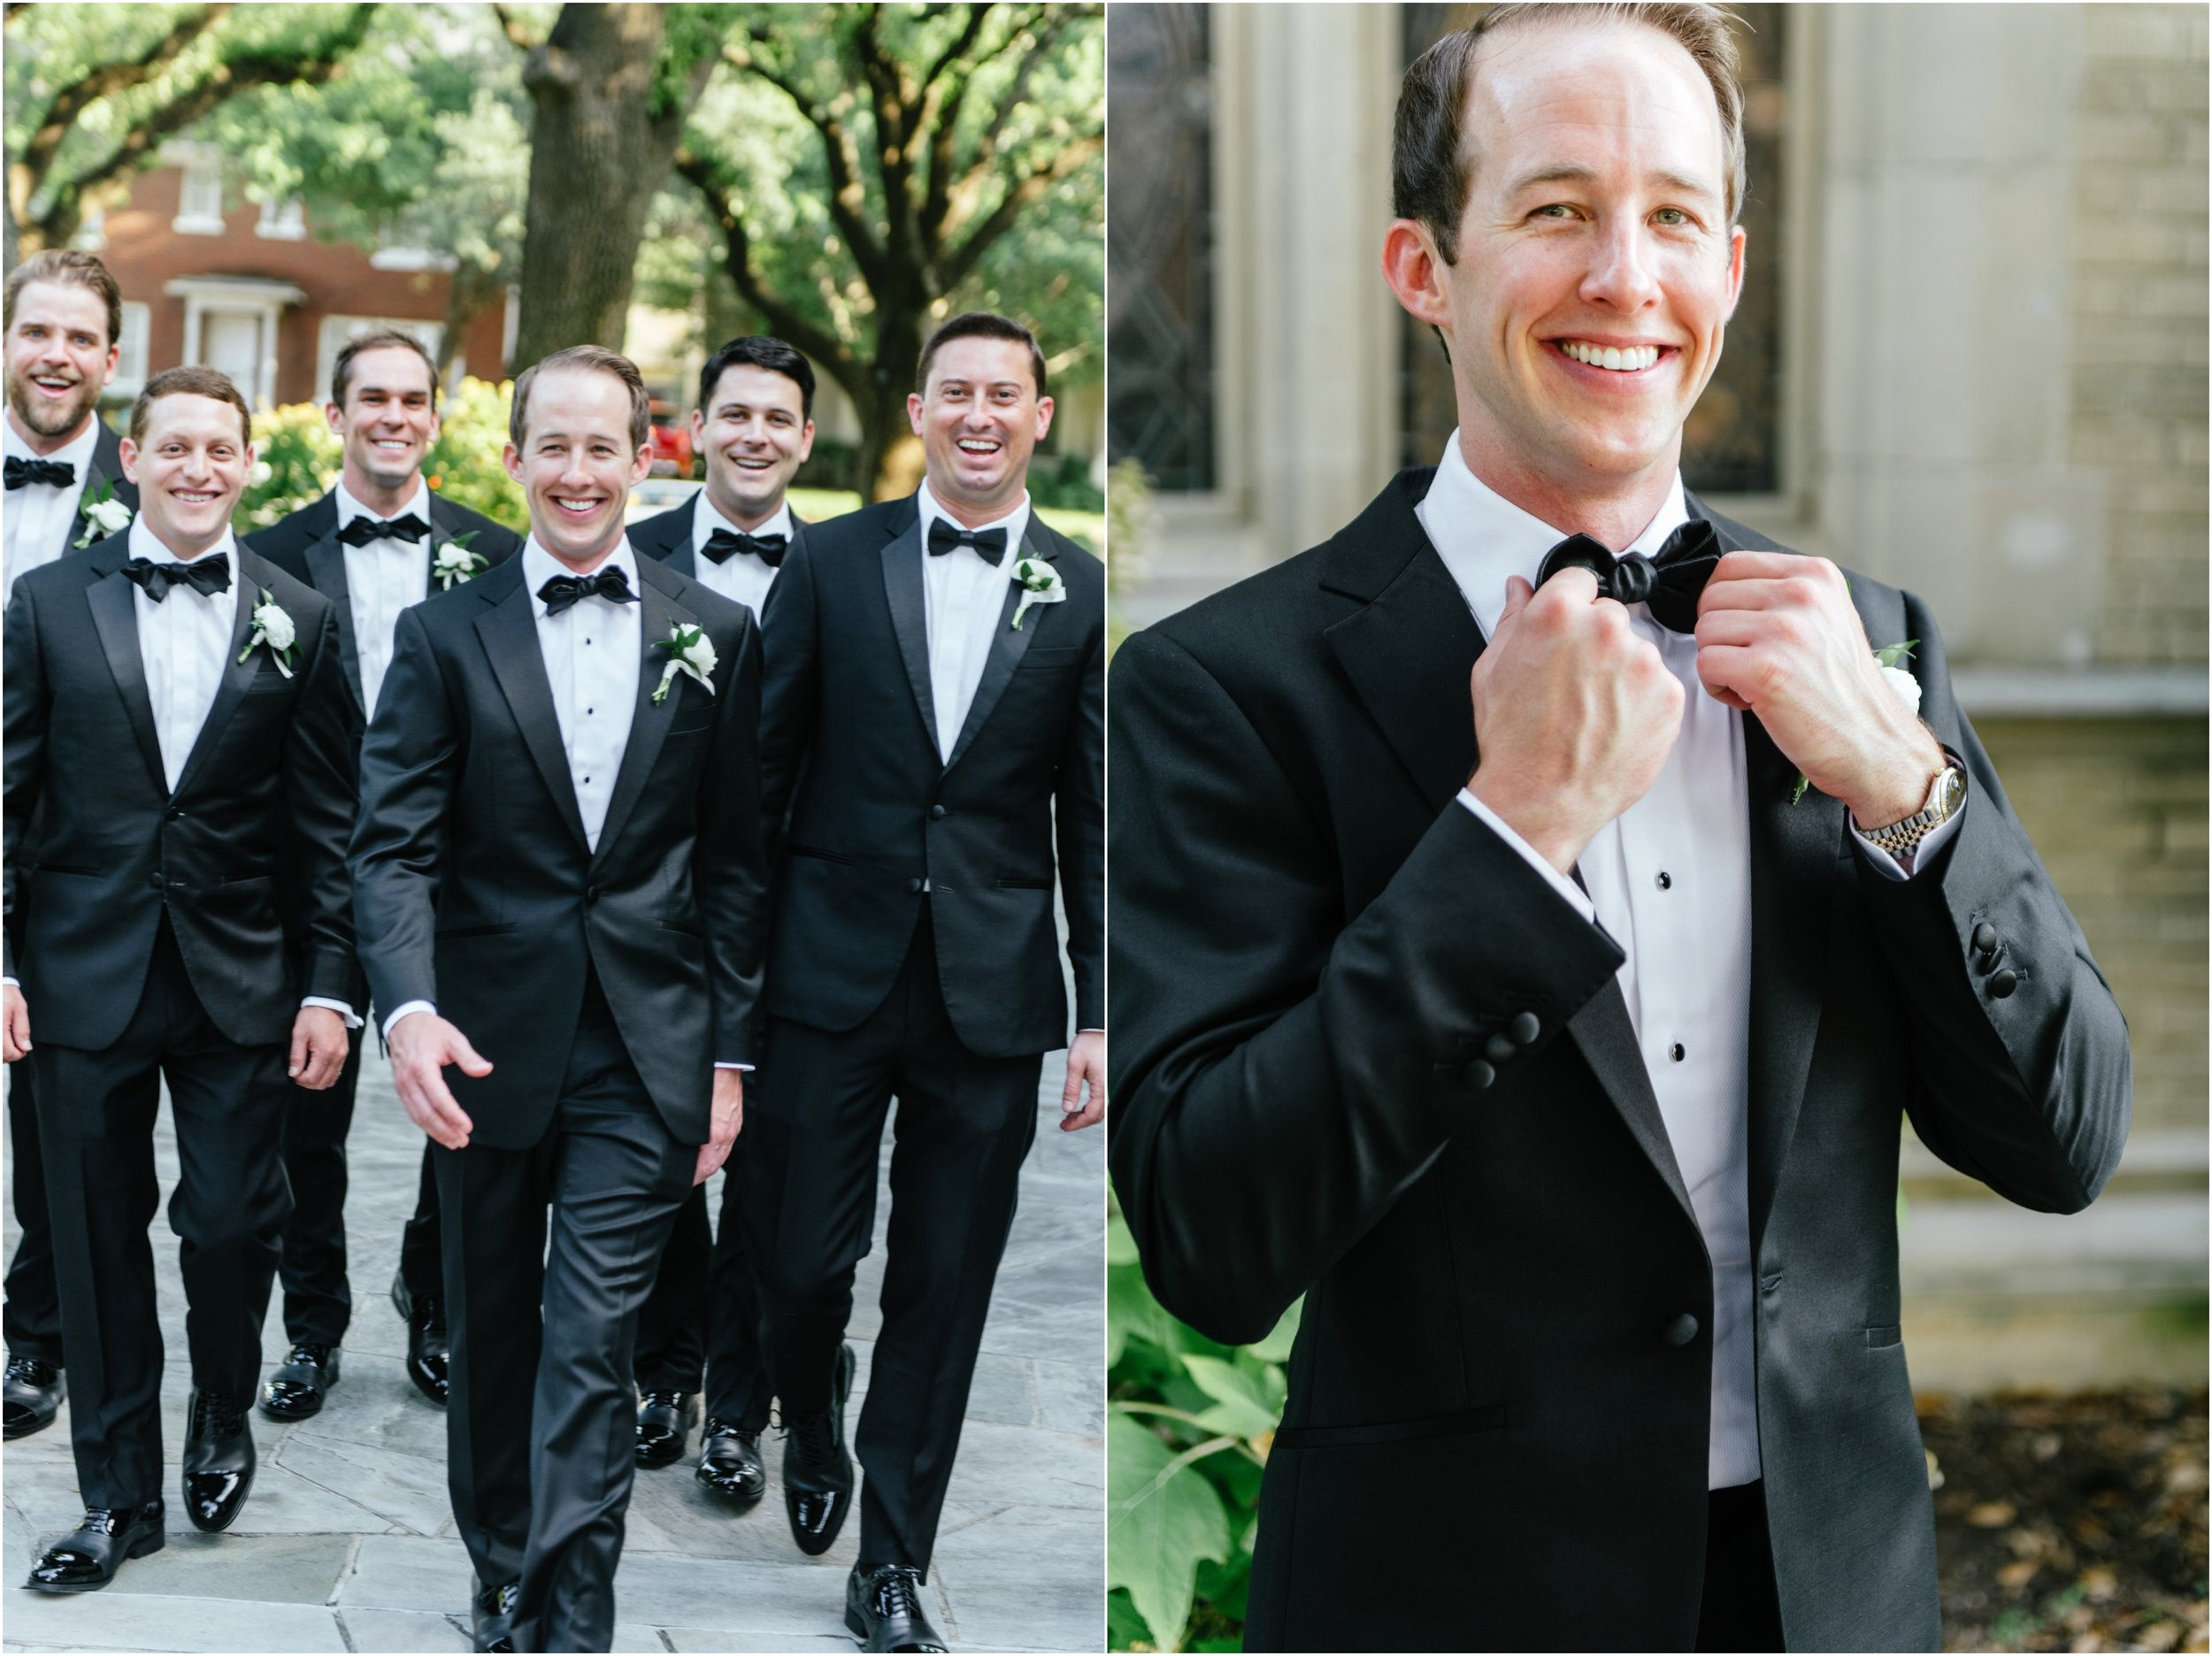 dallasweddingphotographer_fortworthweddingphotographer_texasweddingphotographer_mattandjulieweddings_Lauren+Andy_0063.jpg